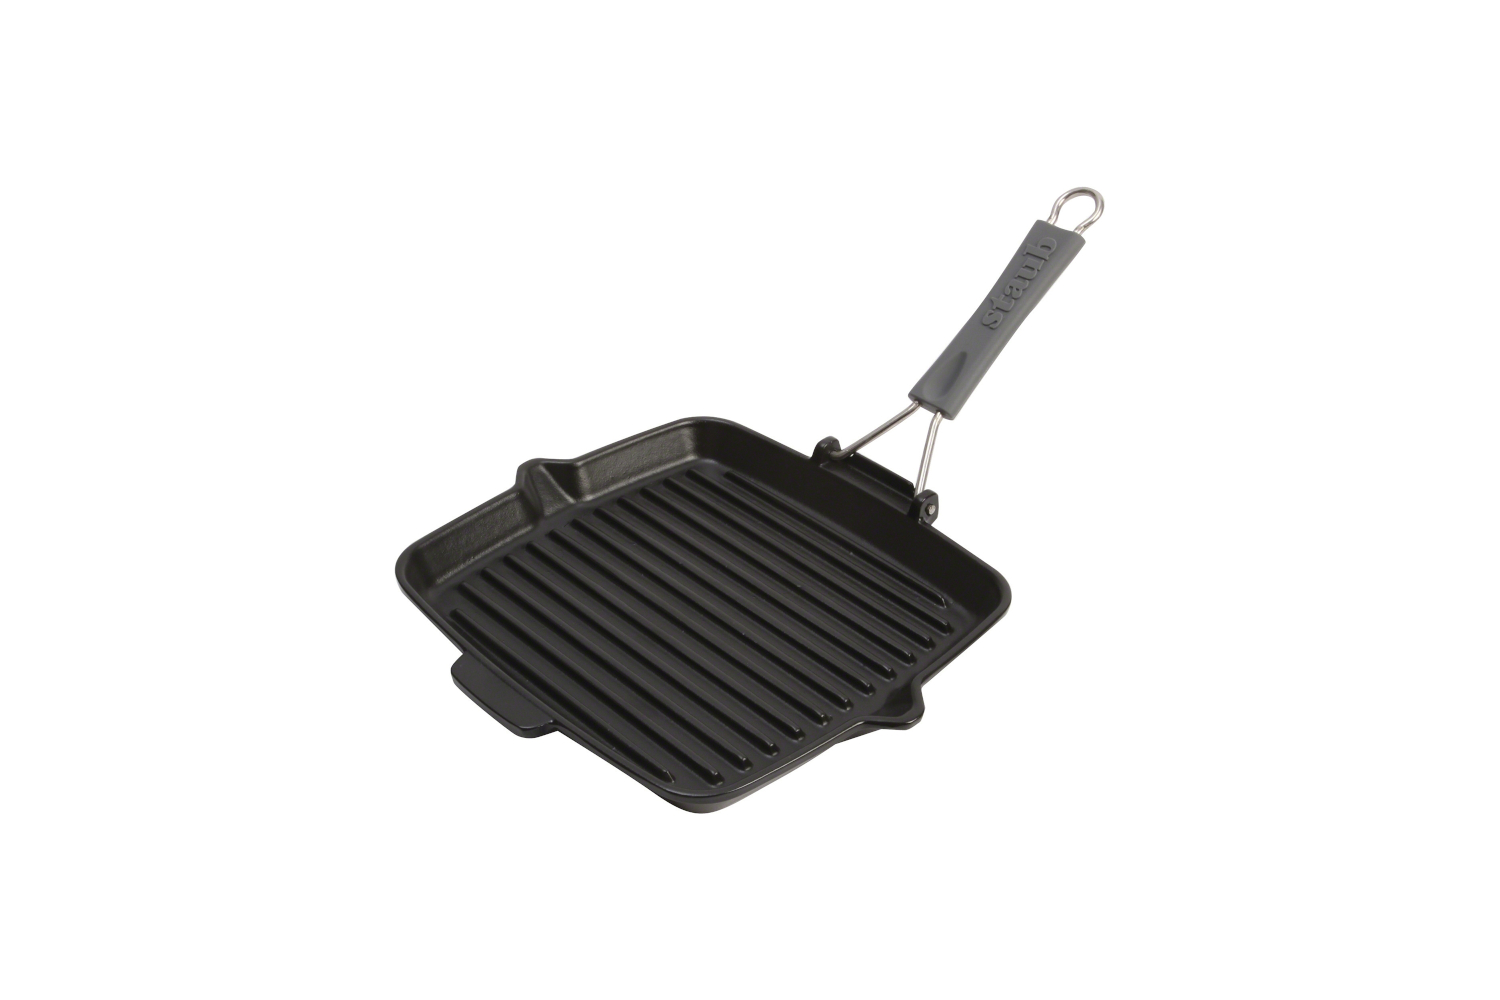 Staub Cast Iron 9 1/2 inch Square Folding Grill - Matte Black